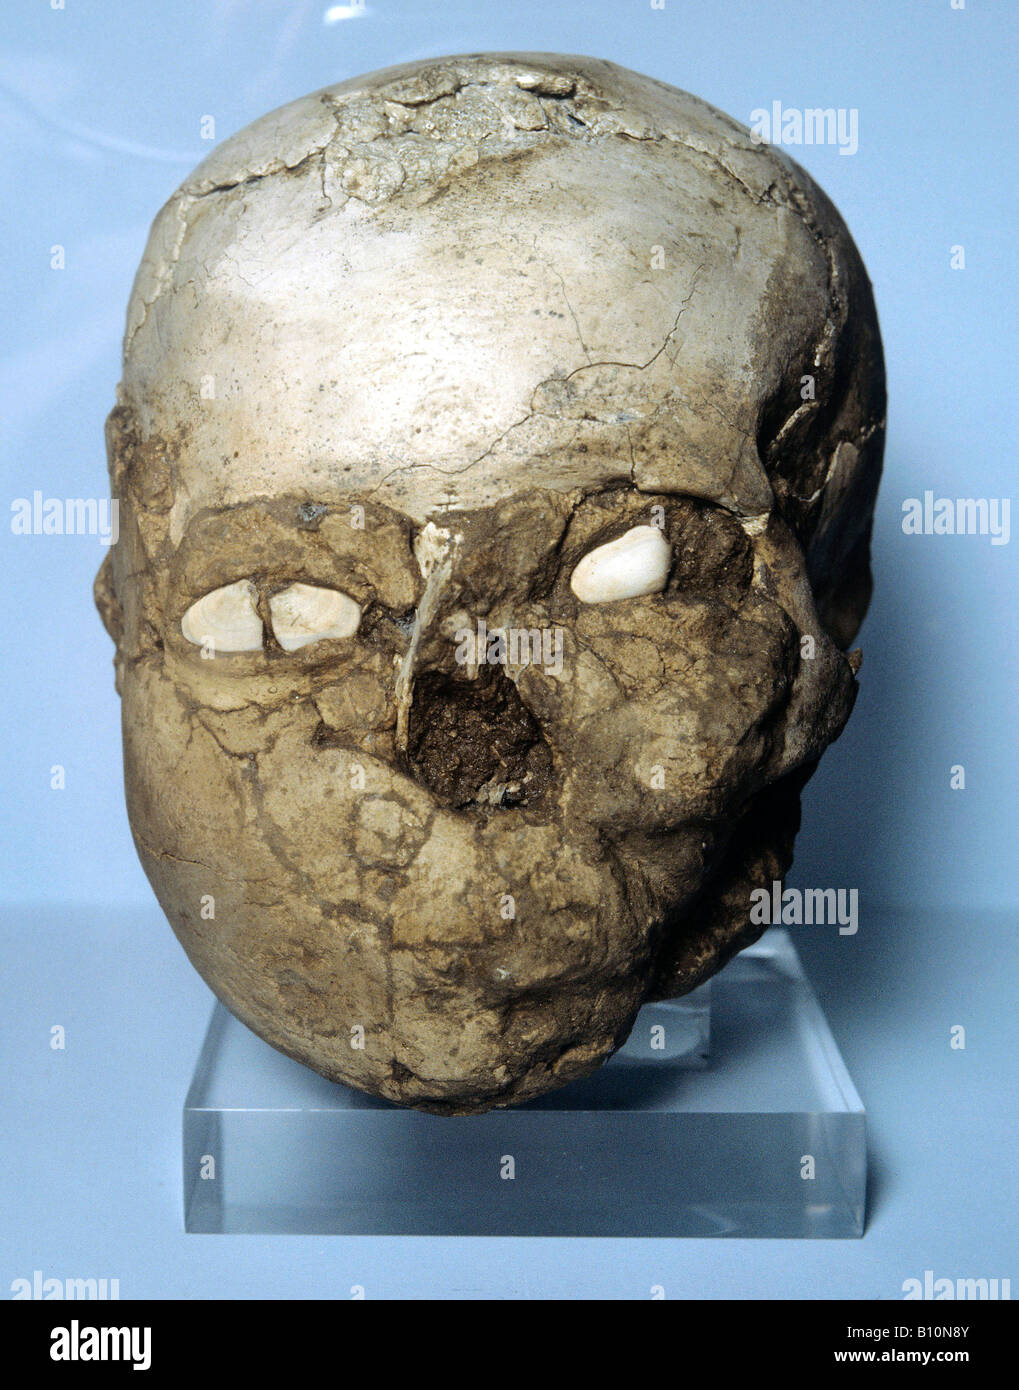 Neolithic plastered skull with shell eyes 7000 BC Jericho - Stock Image